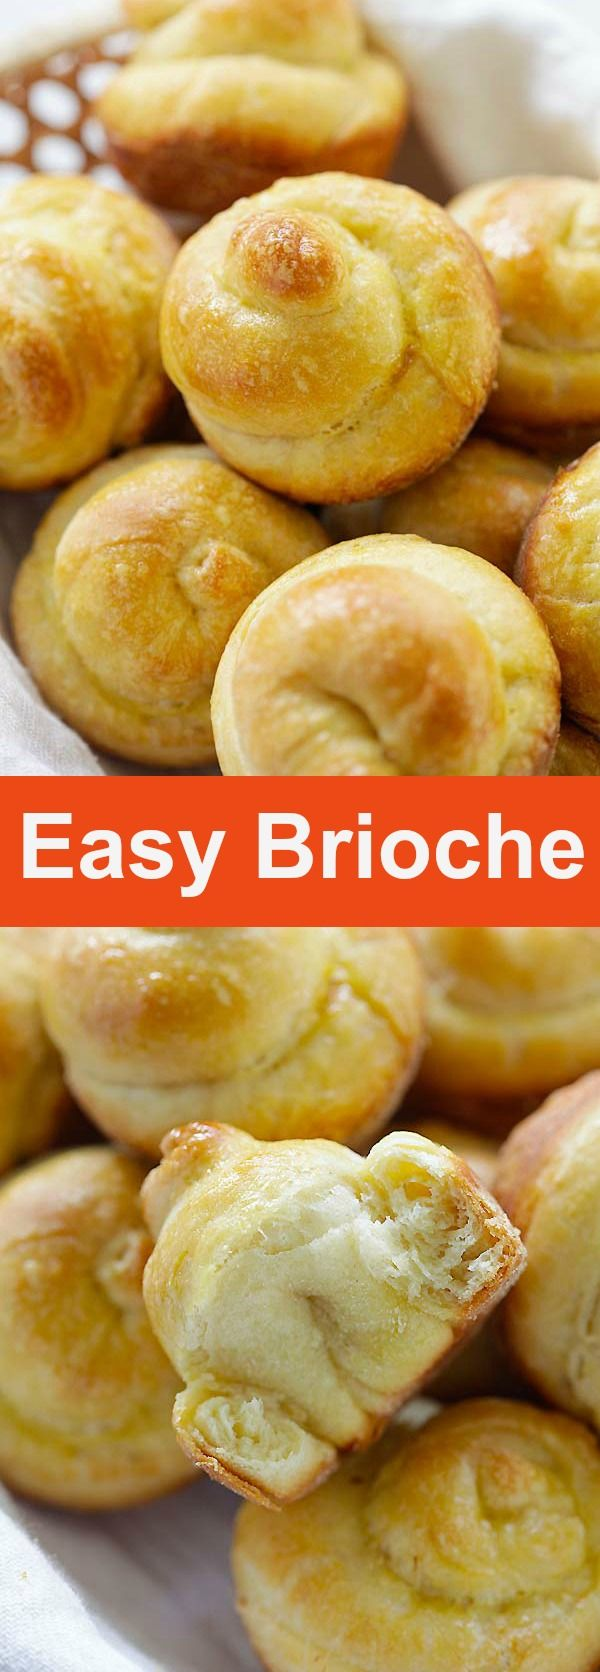 Easy Brioche – the easiest homemade French Brioche recipe ever! It's eggy, buttery, puffy and flaky with a crispy crumbs that you can't stop eating | rasamalaysia.com